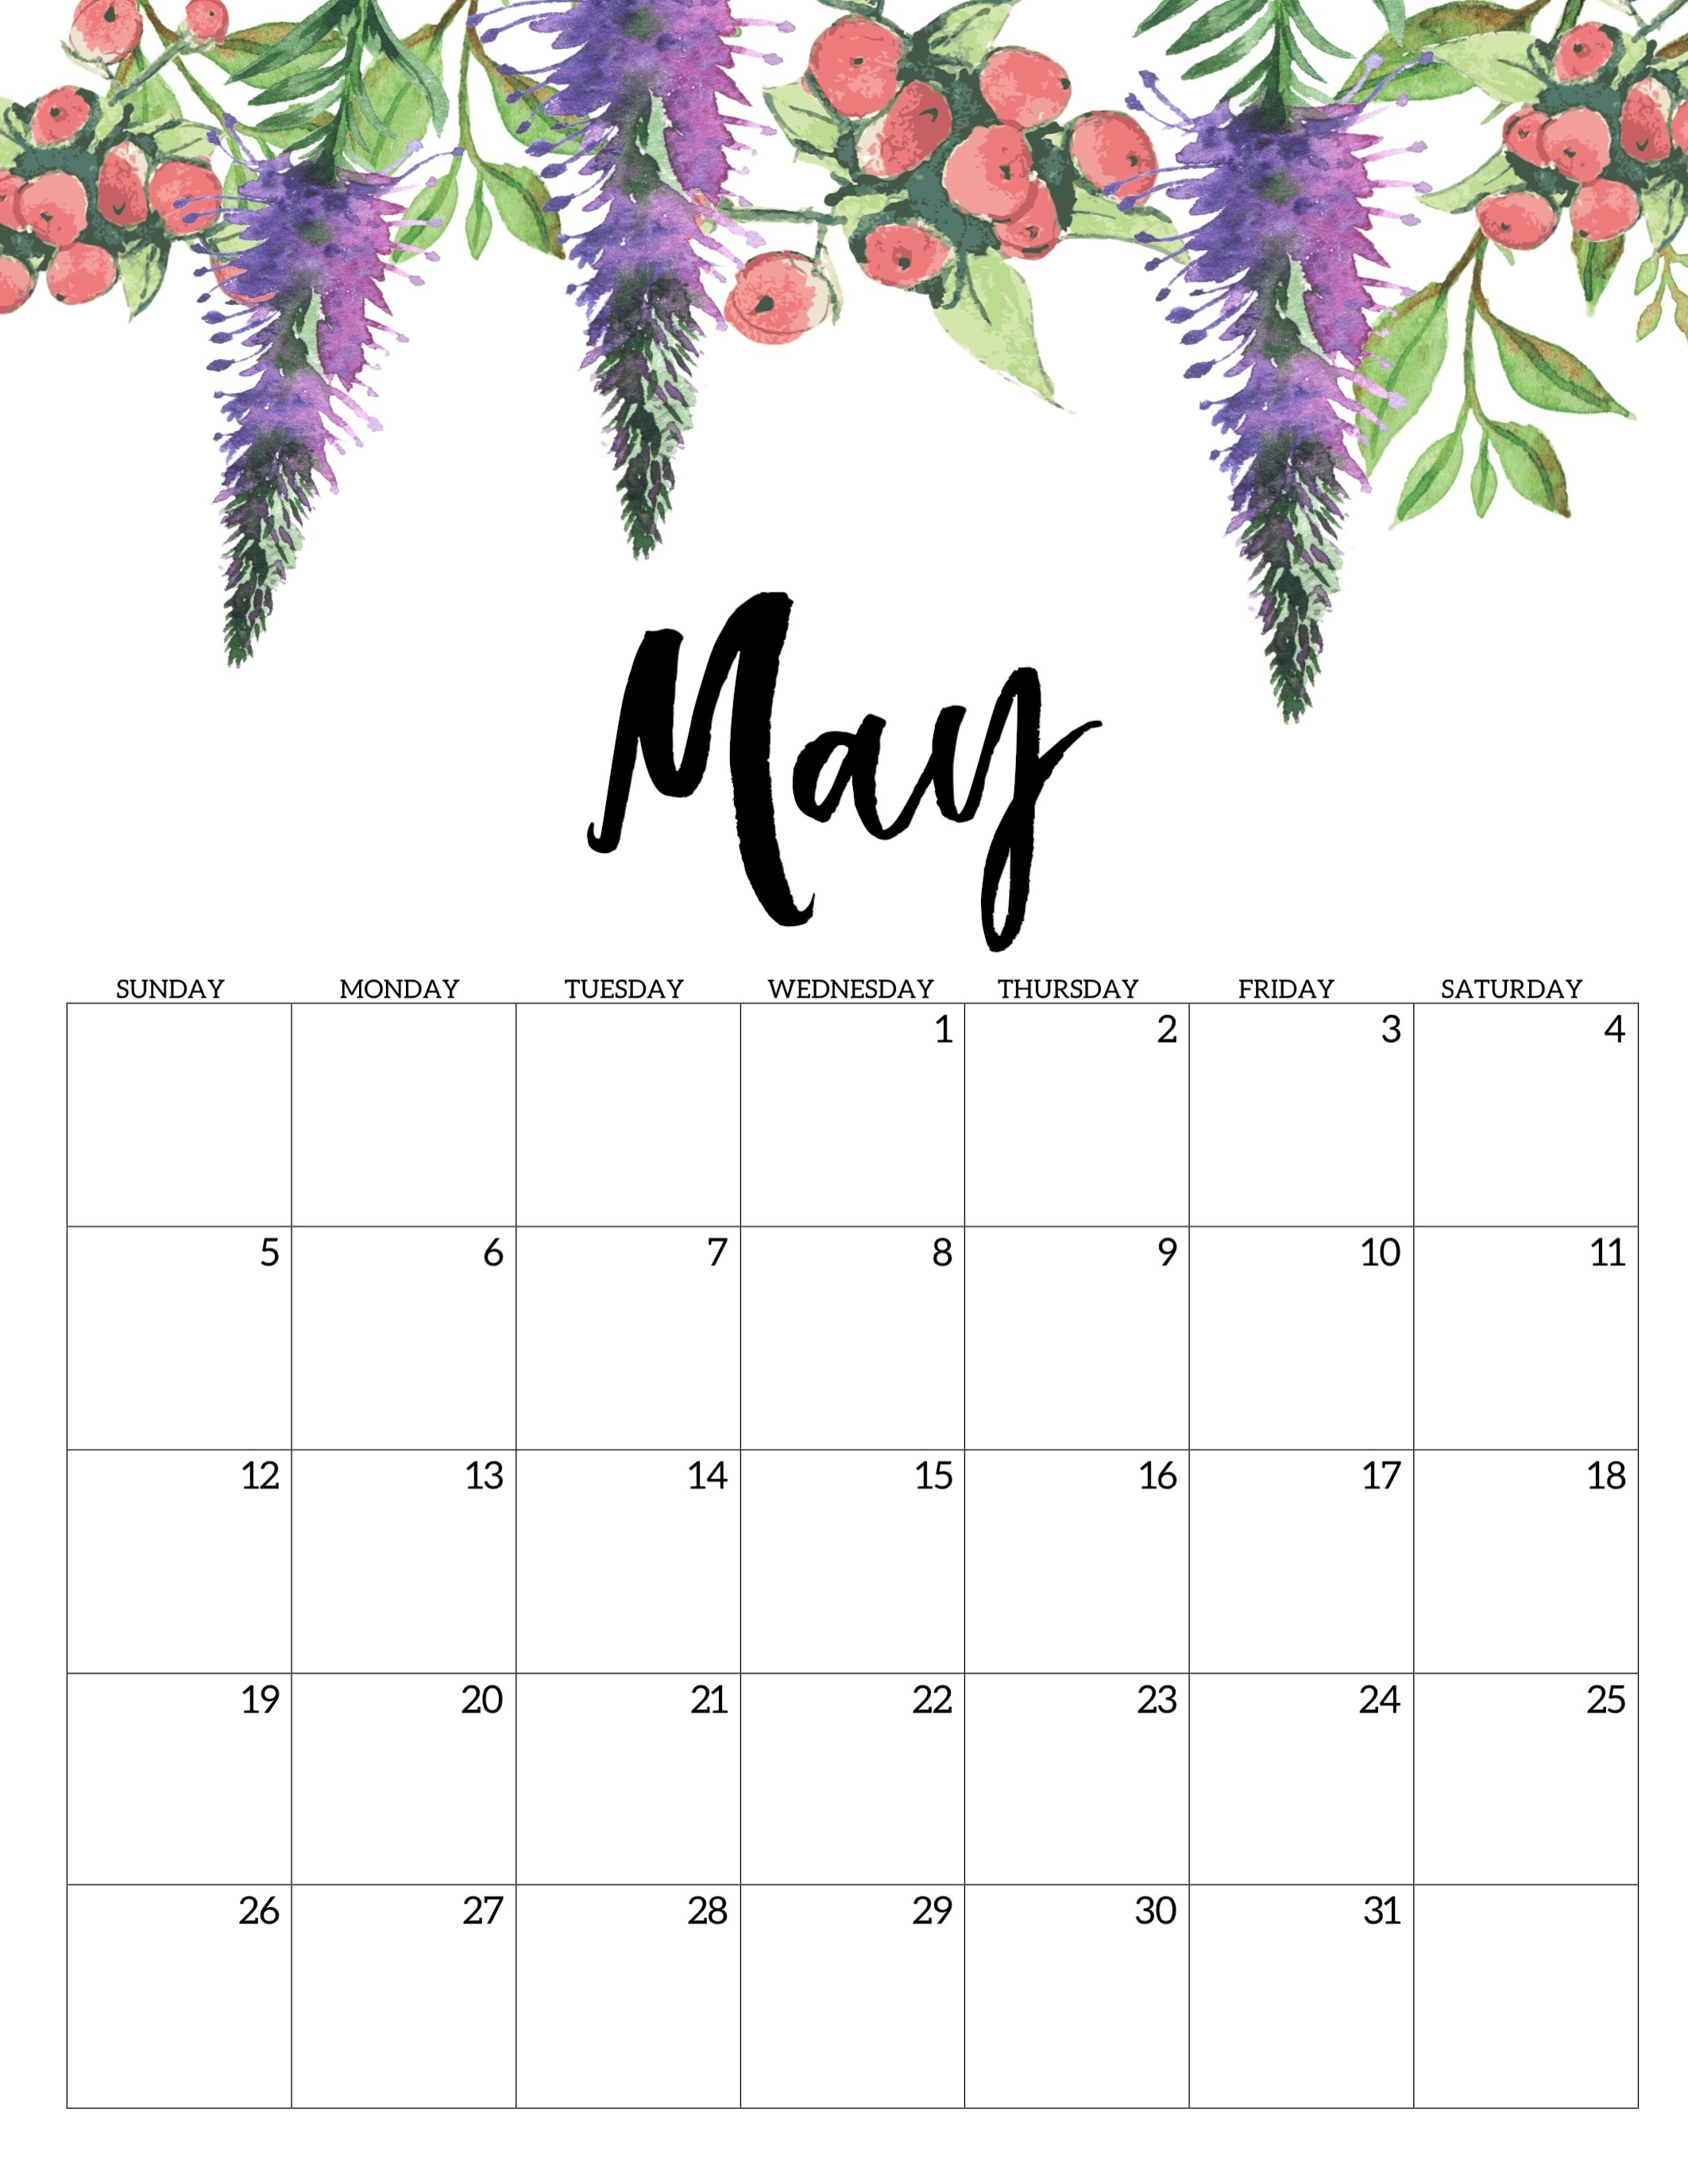 Free Printable Calendar 2019 - Floral - Paper Trail Design throughout 2019 2020 Girly Calendar Printable